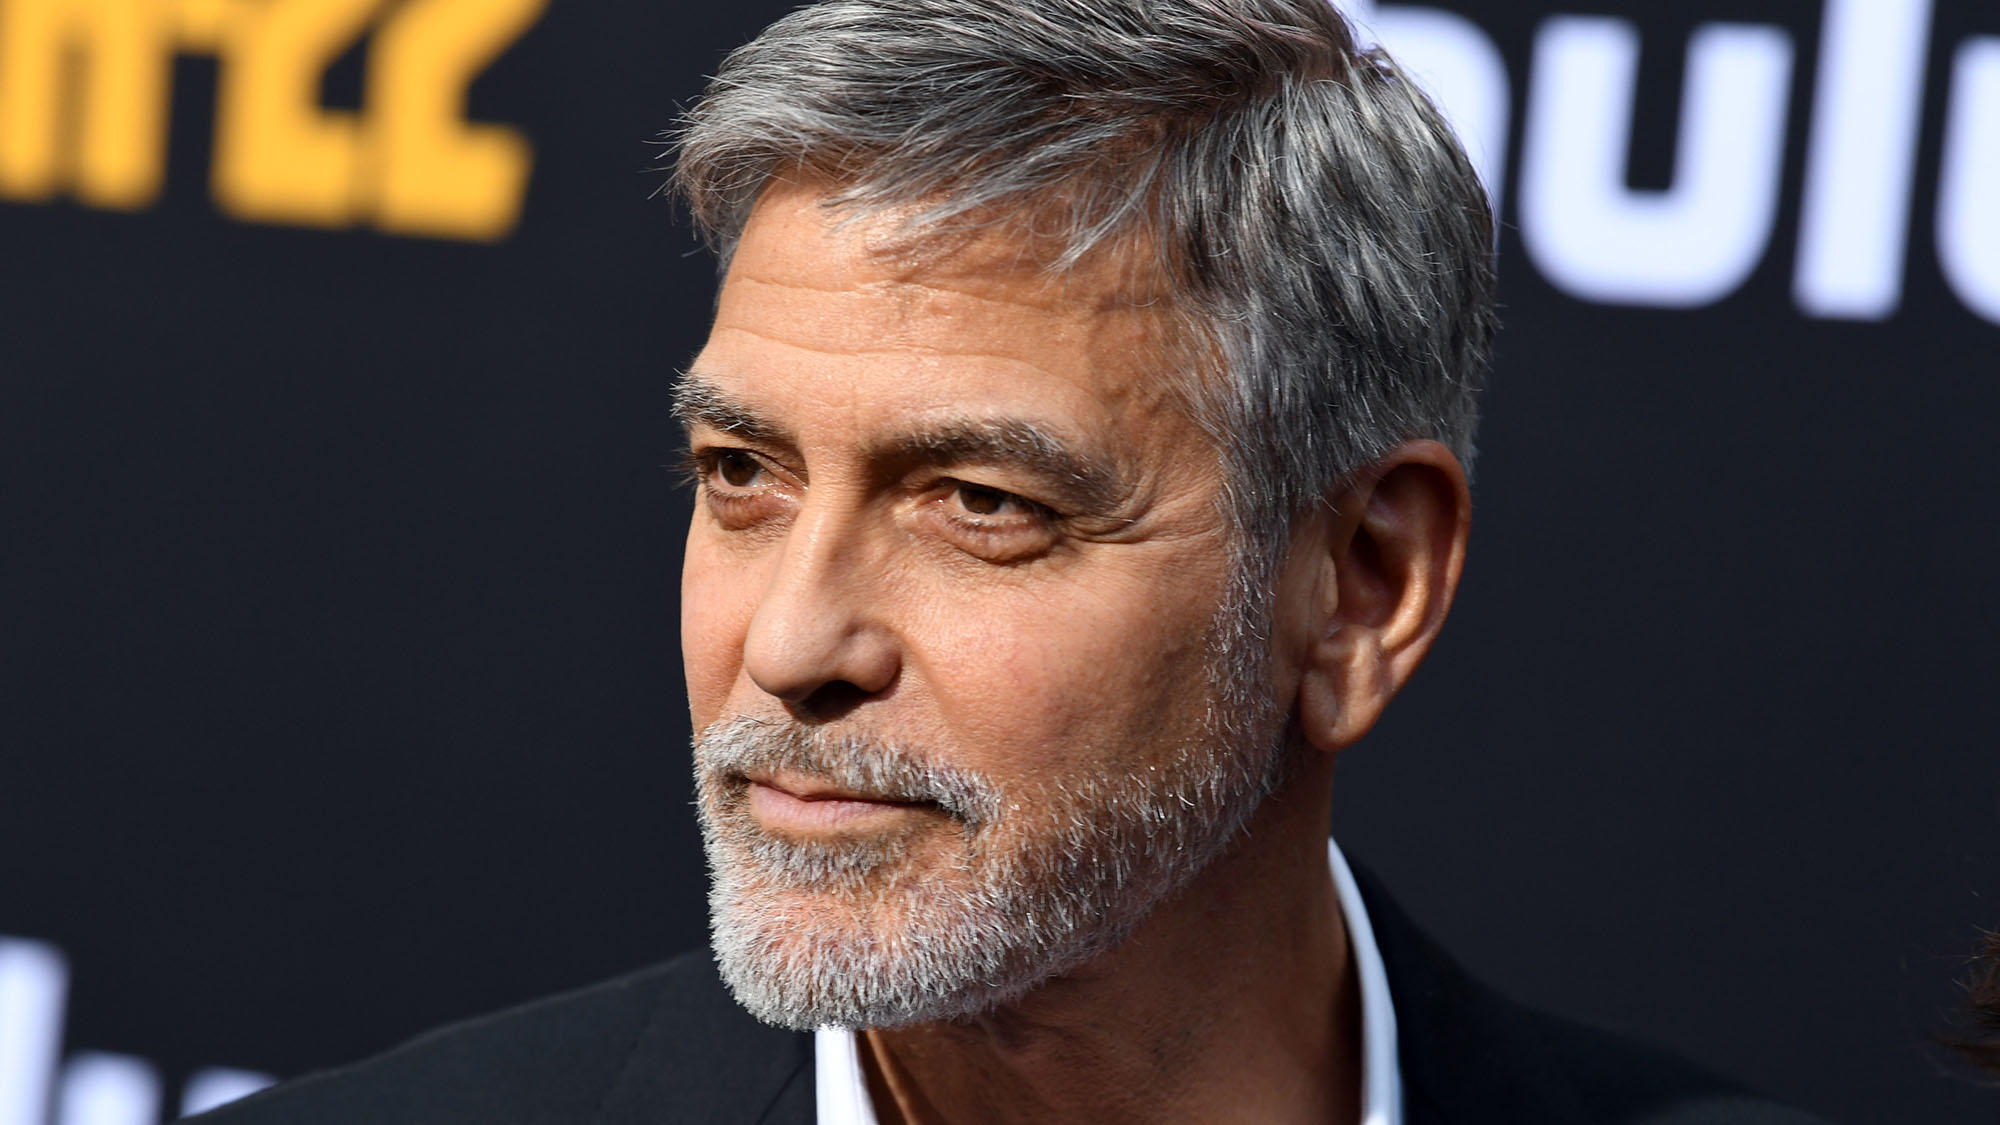 George Clooney Returning to Sci-Fi with 'Good Morning ...